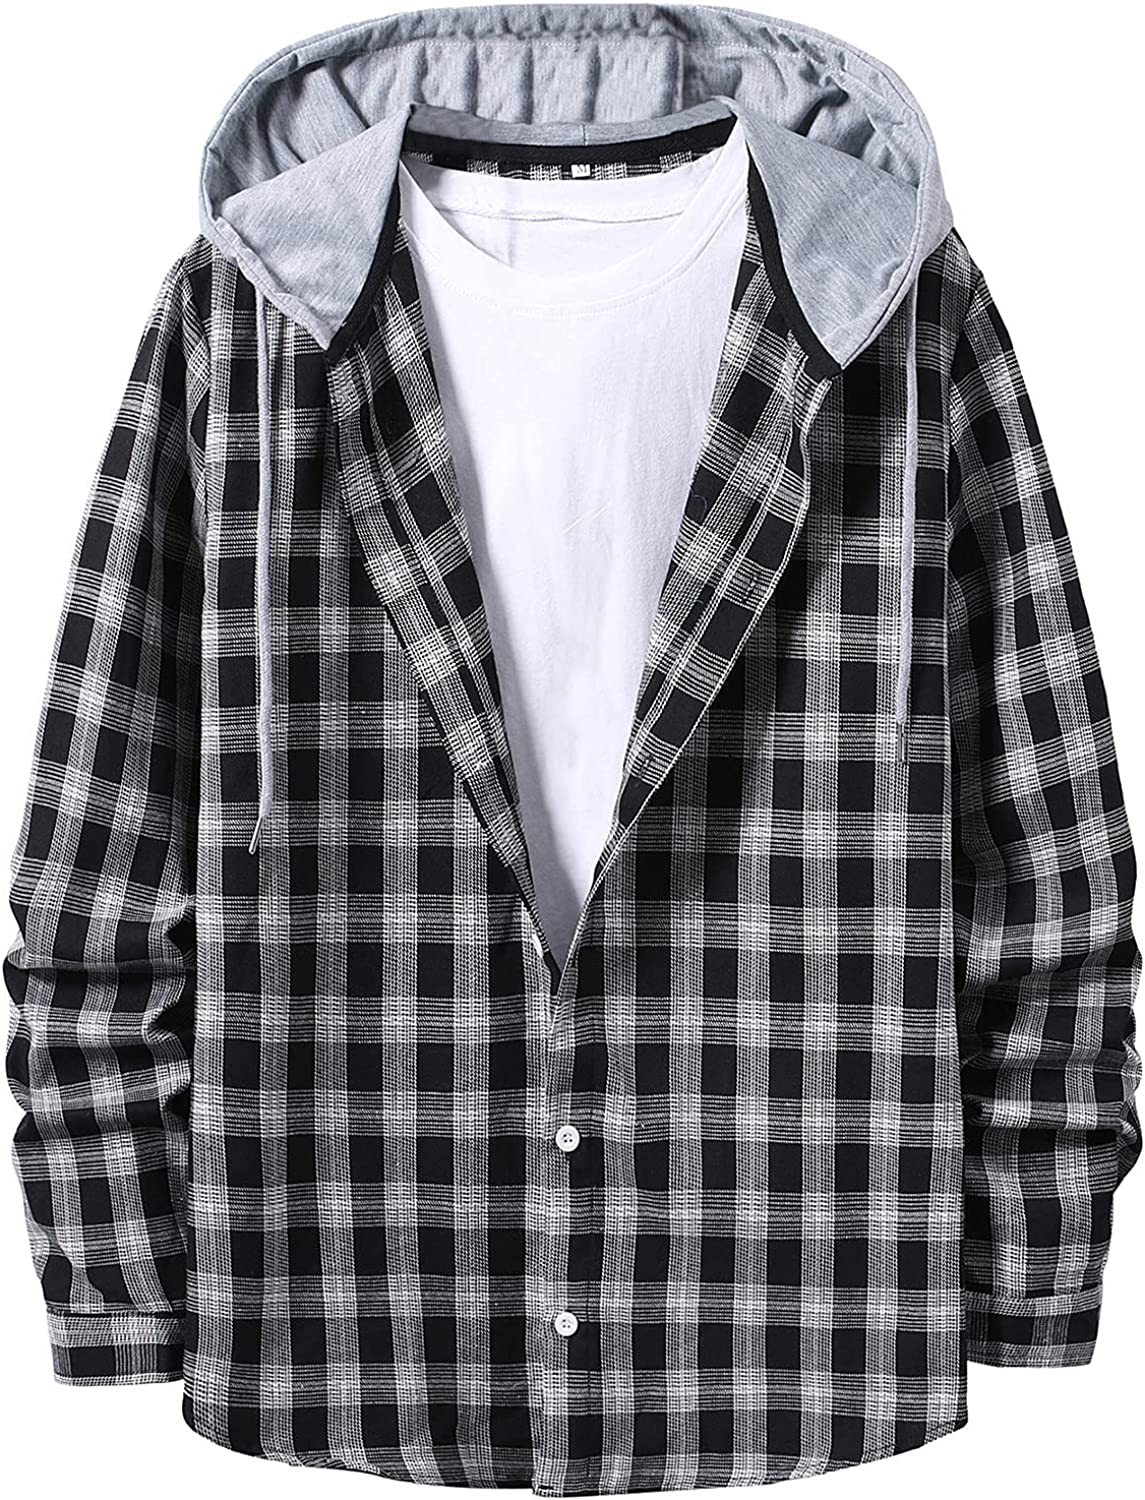 Mens Teen Boys Flannel Button Down Shirts Plaid Loose Fit Long Sleeve Lightweight Sweatshirts Flannel Jackets